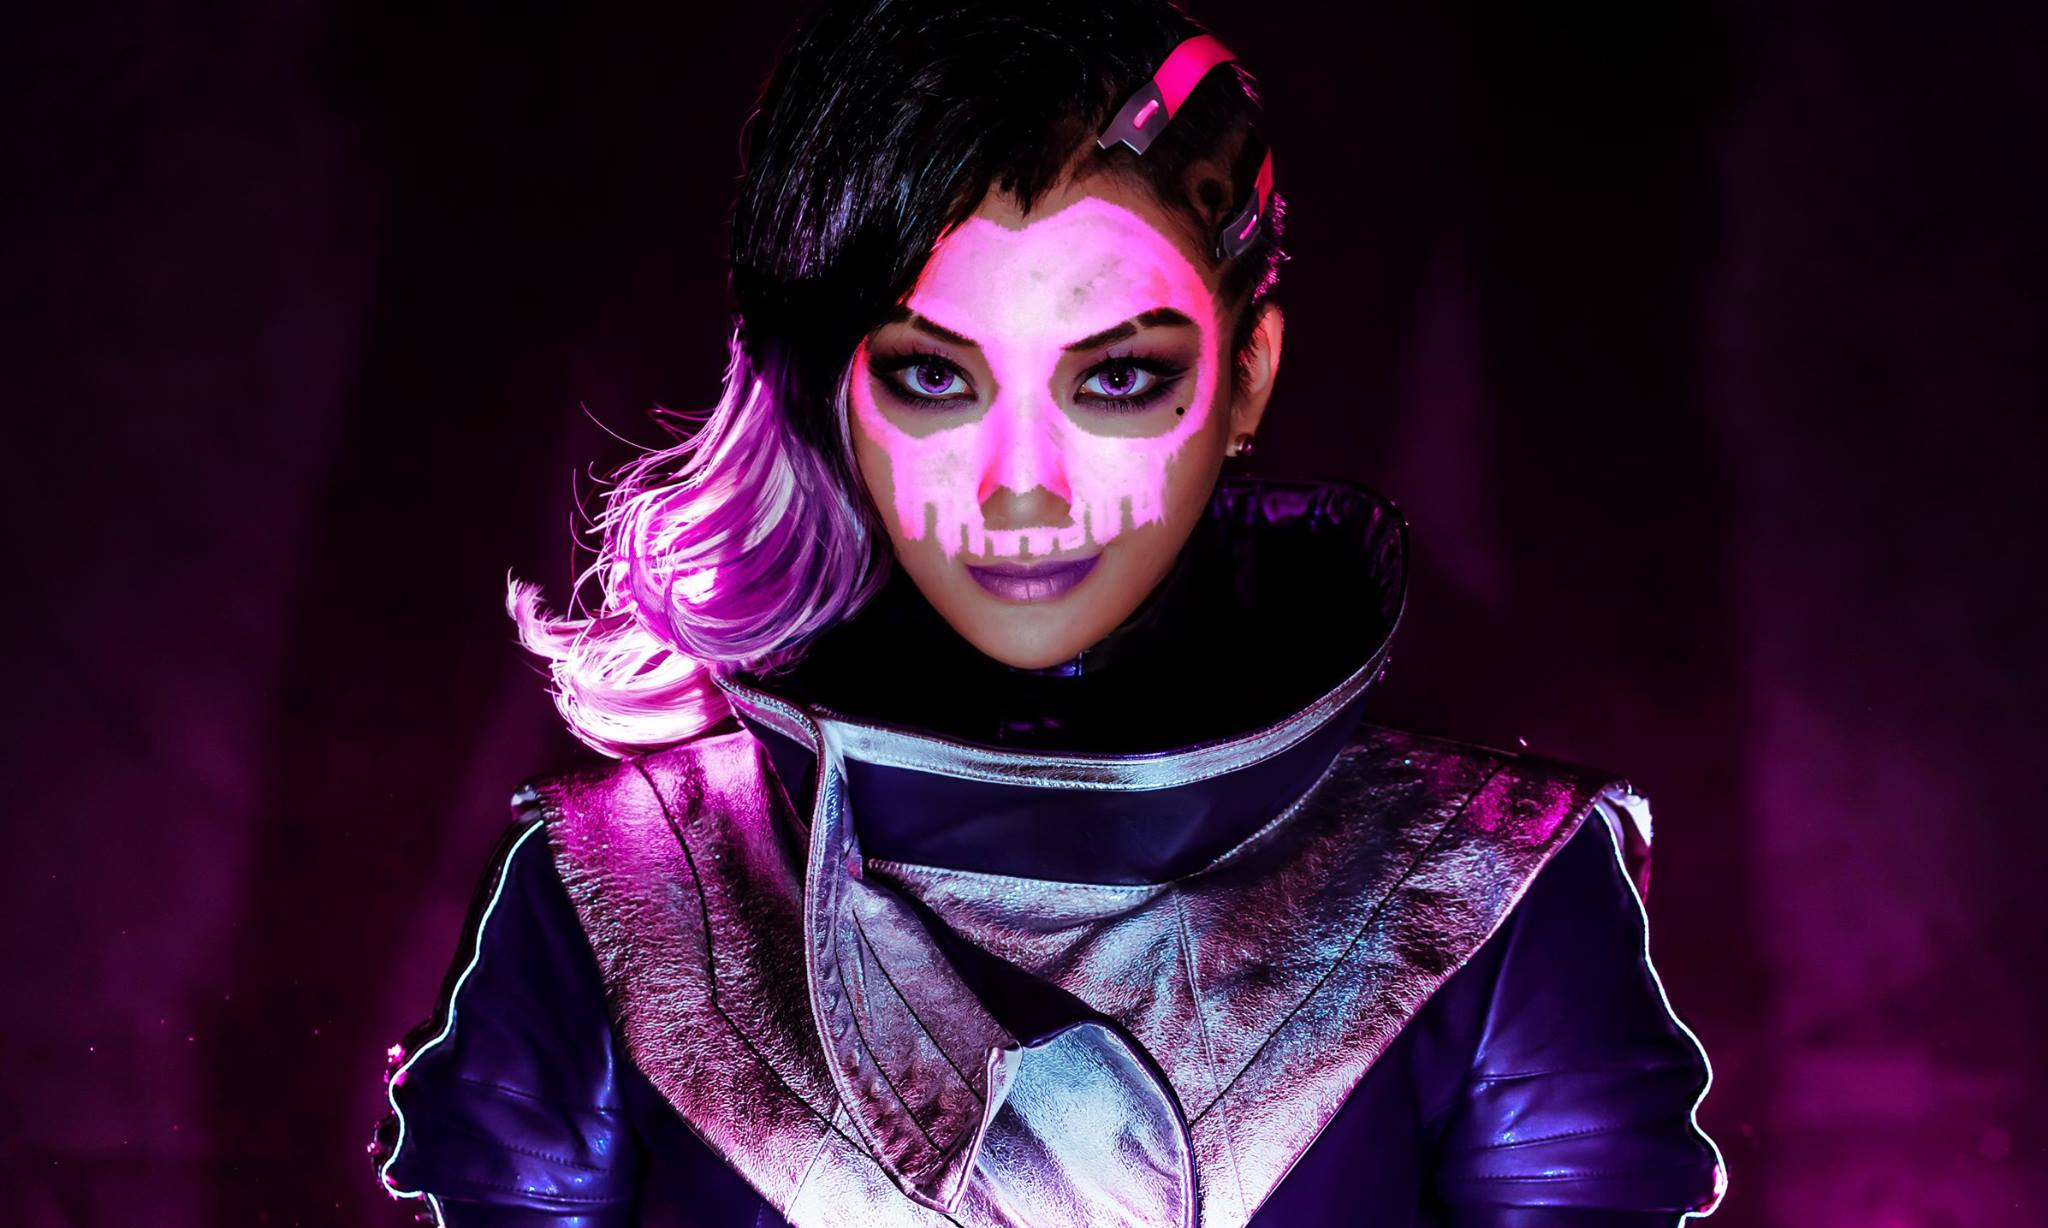 Overwatch: Sombra Cosplay by Pion Kim